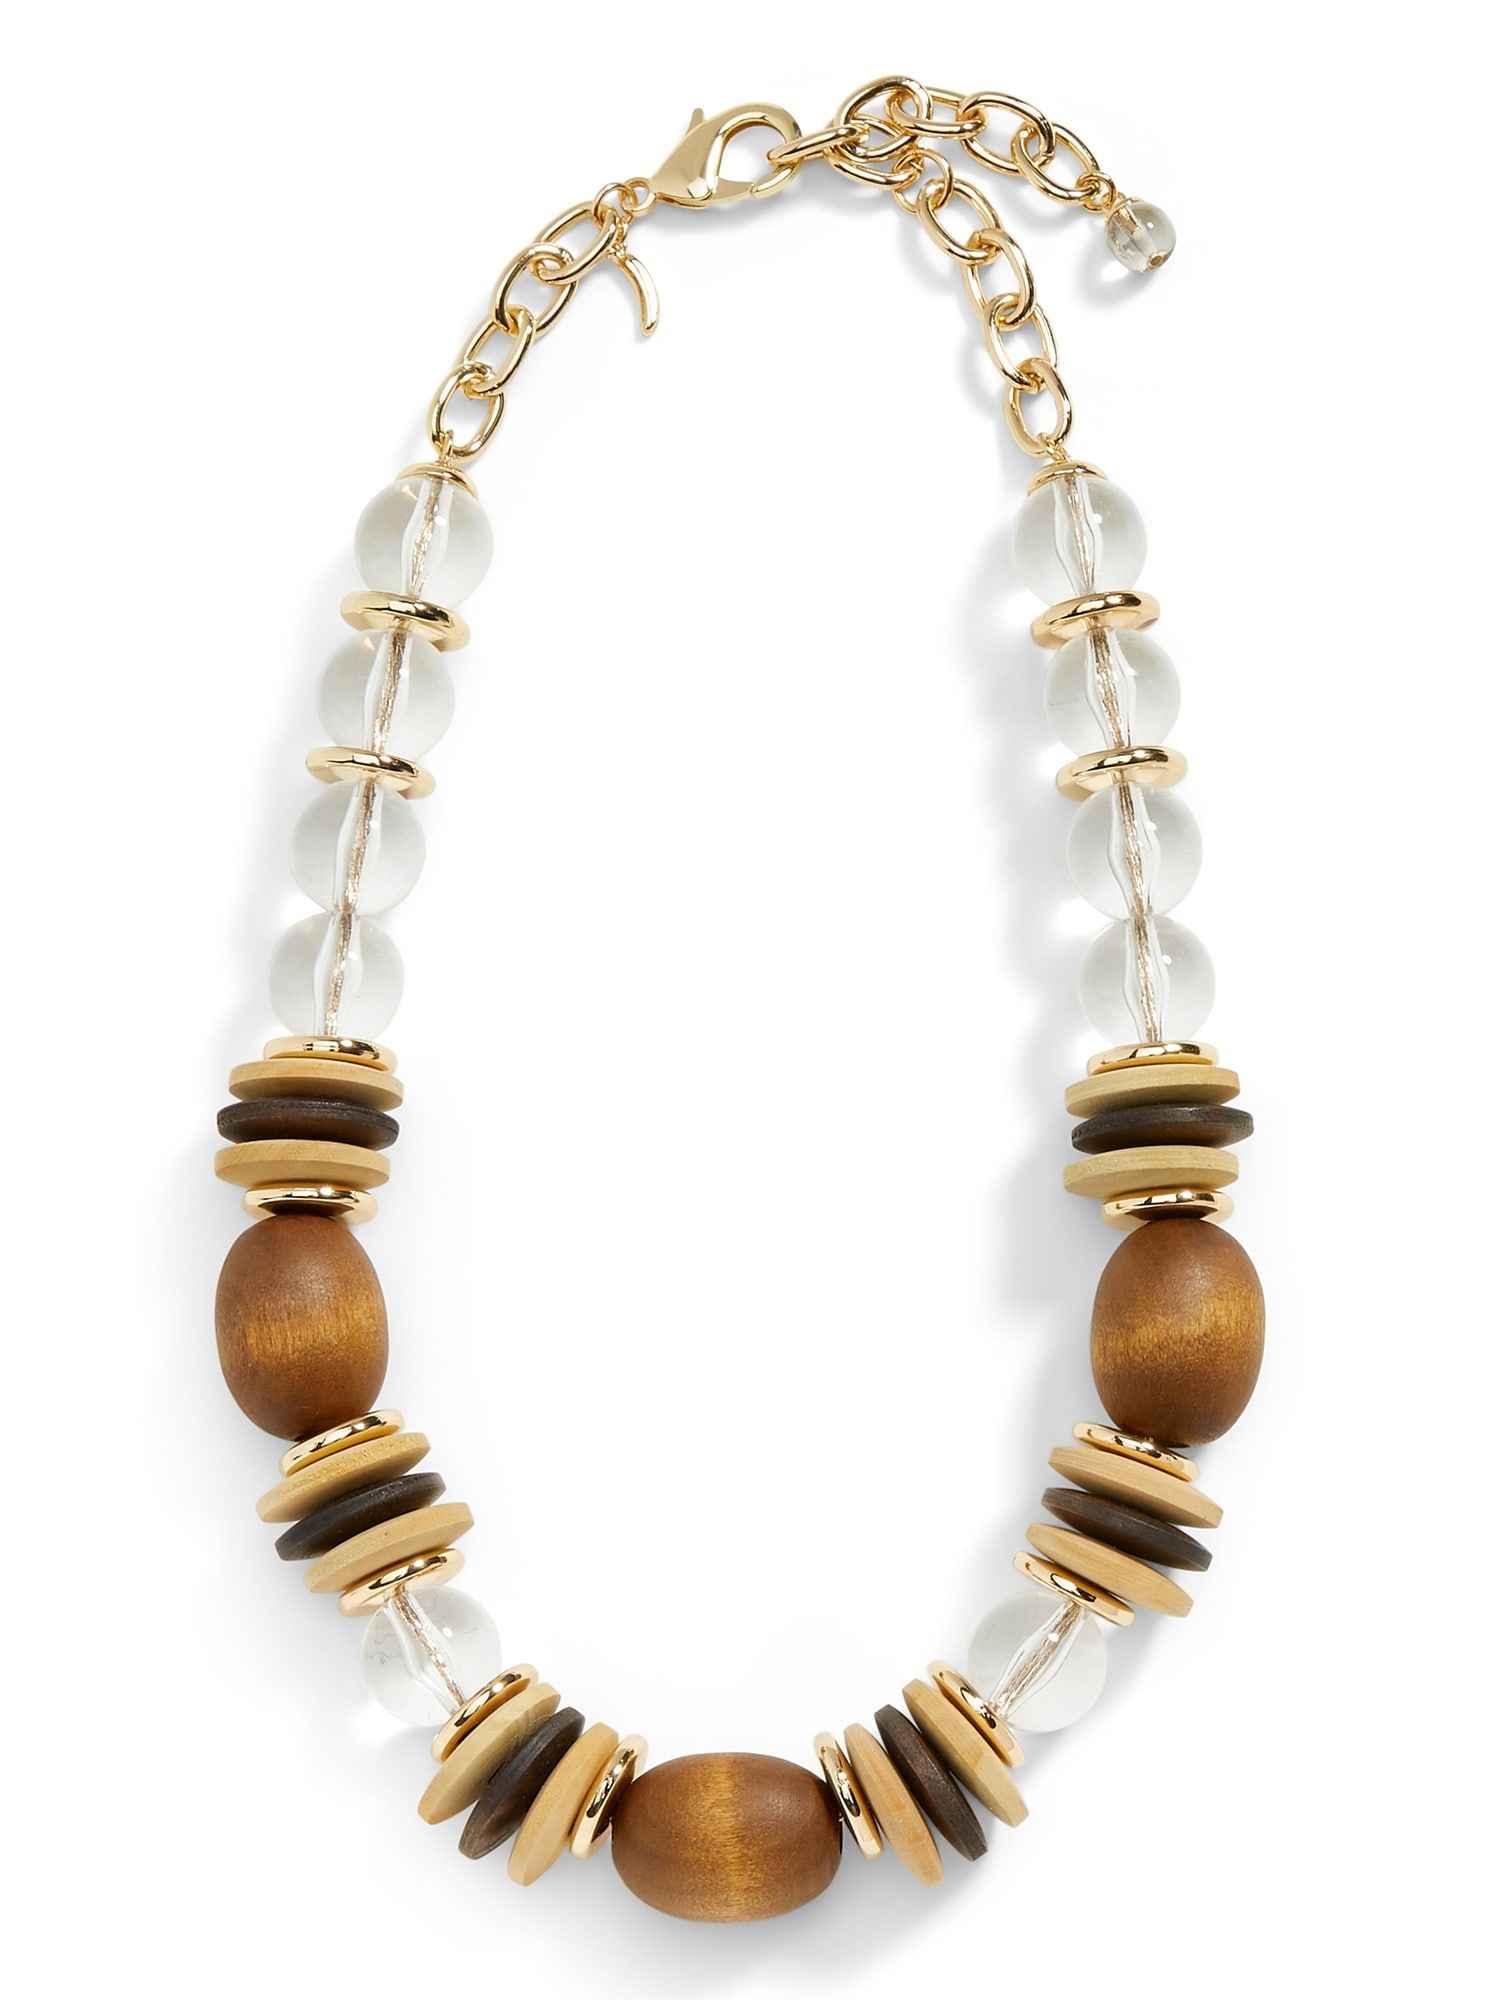 Statement Necklace Festival Necklace Gifts for Her Wood Necklace Festival Jewelry Beaded Jewelry Beaded Necklace Gemstone Necklace